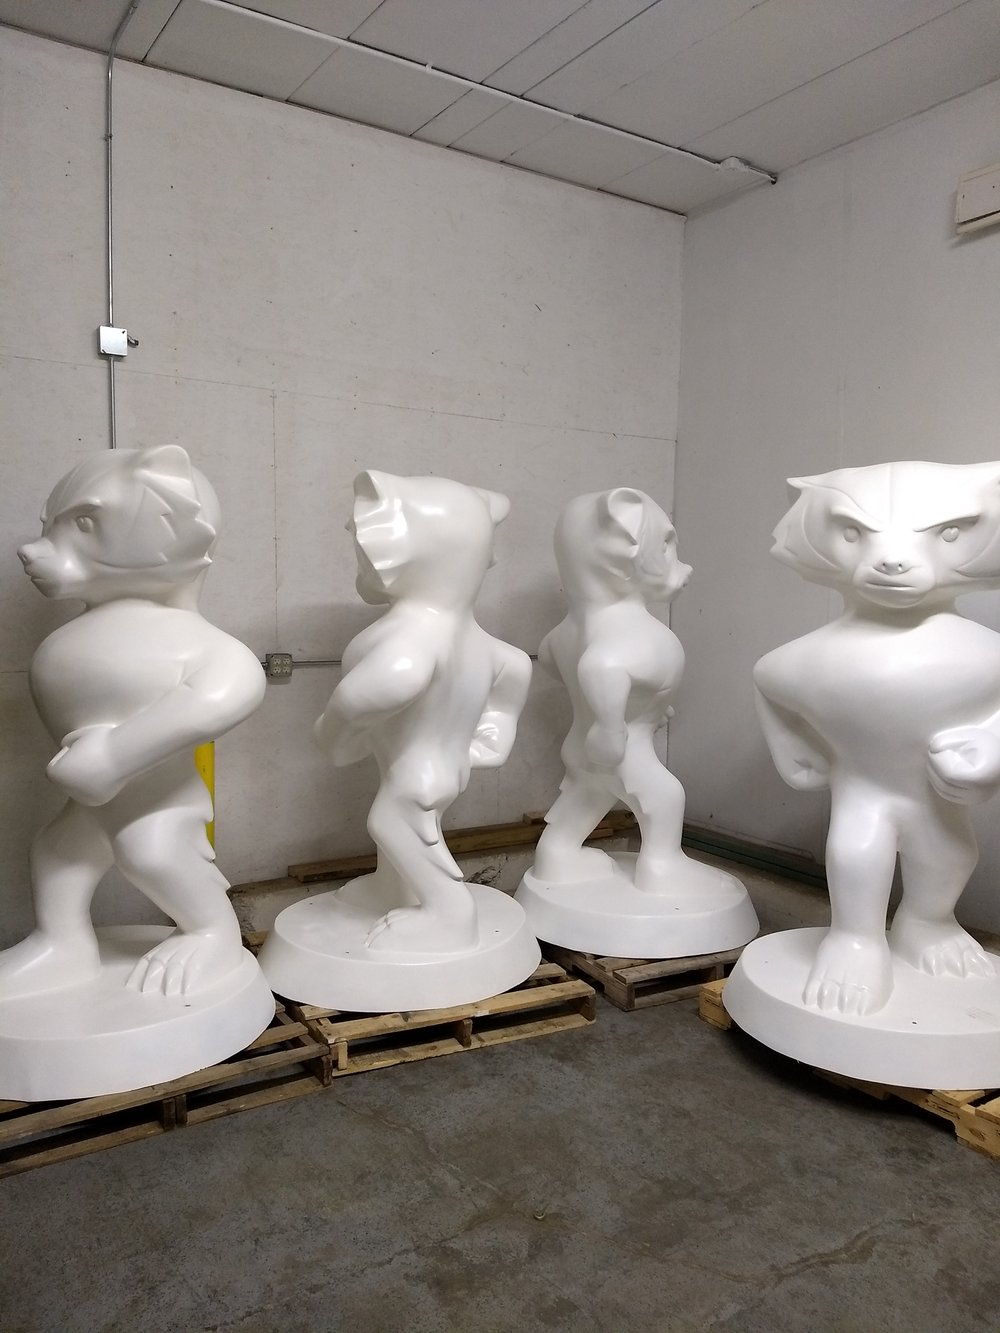 The blank fiberglass sculptures, waiting to be painted